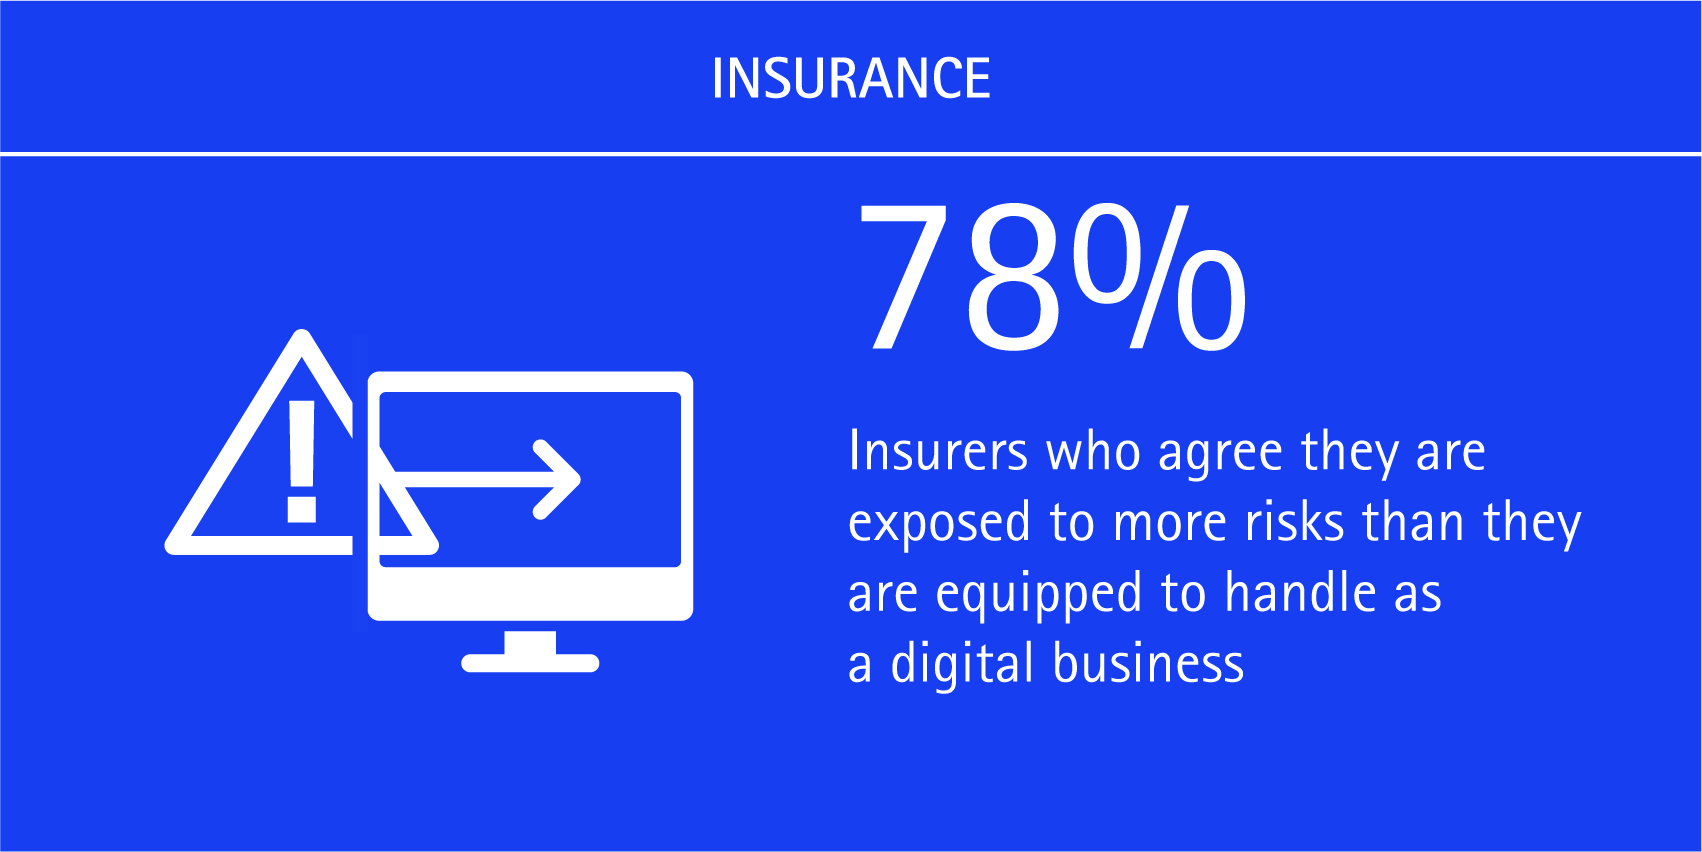 Digital Advances Bring Great Opportunities but also Great Risks